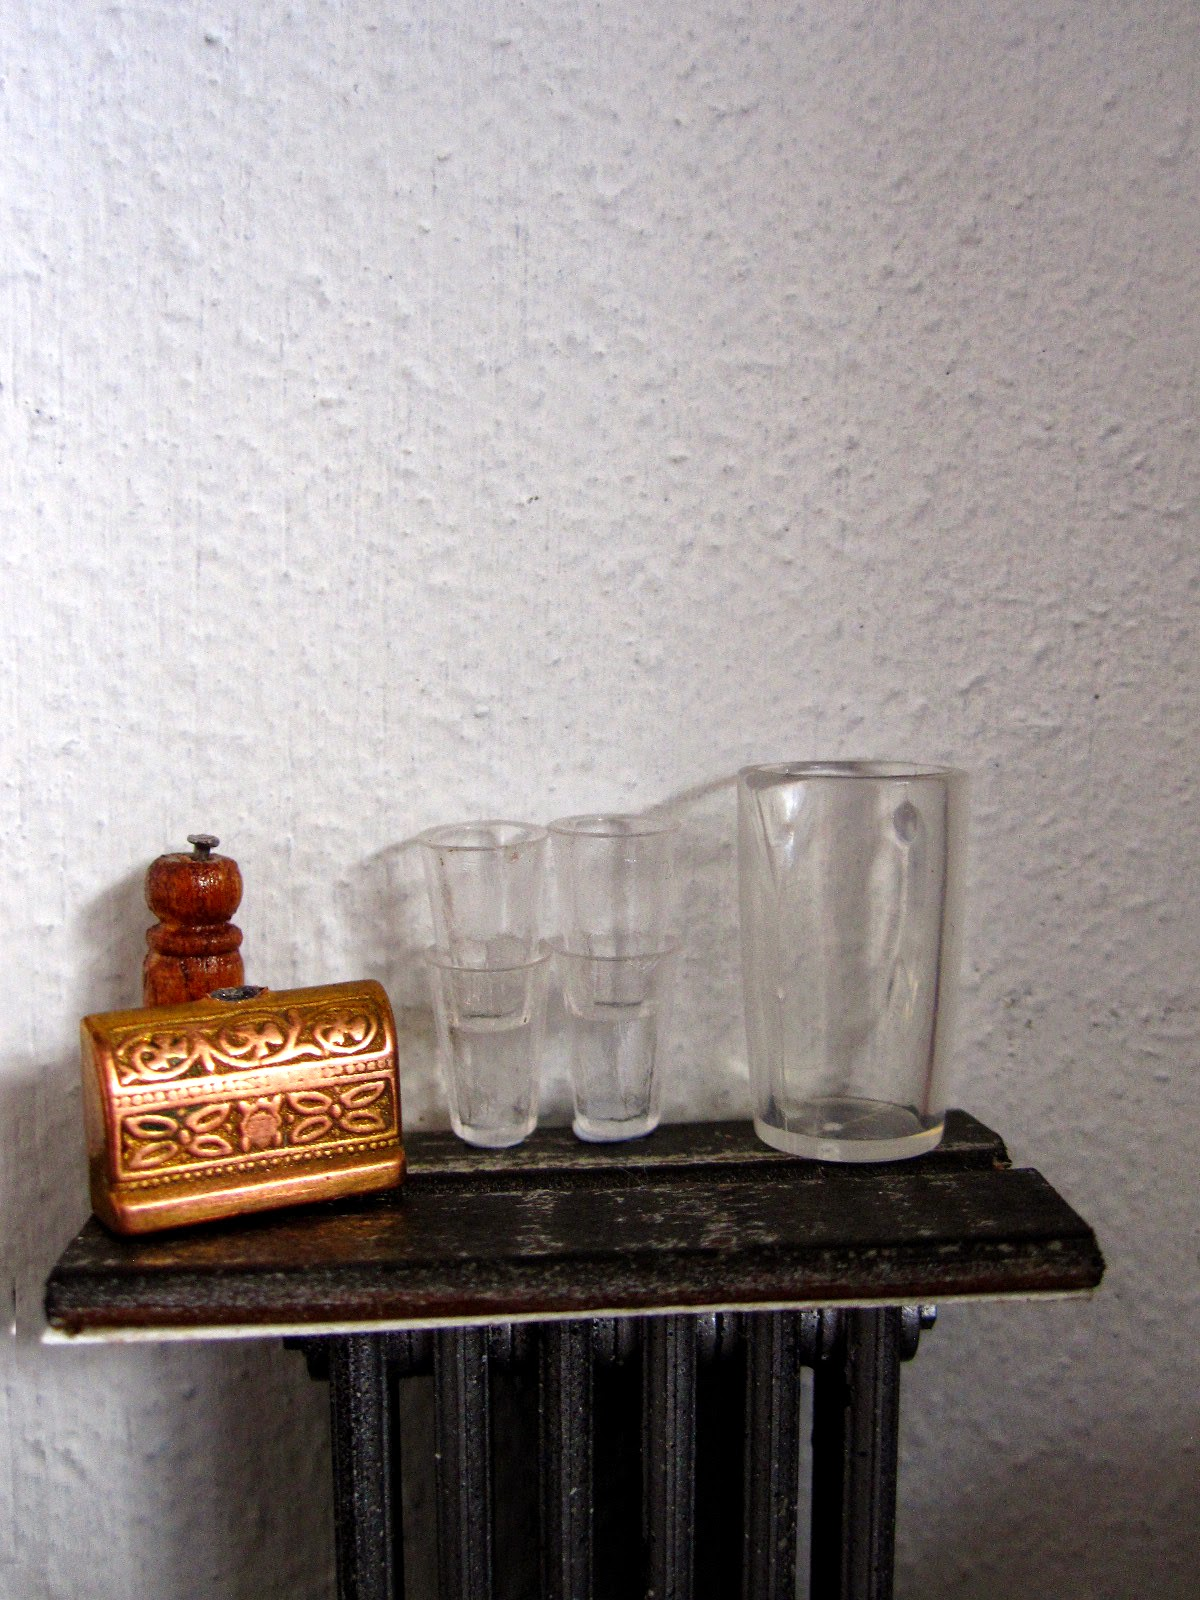 Modern dolls' house miniature cafe water shelf with jug and glasses, pepper grinder and sugar bowl in the shape of a treasure chest.